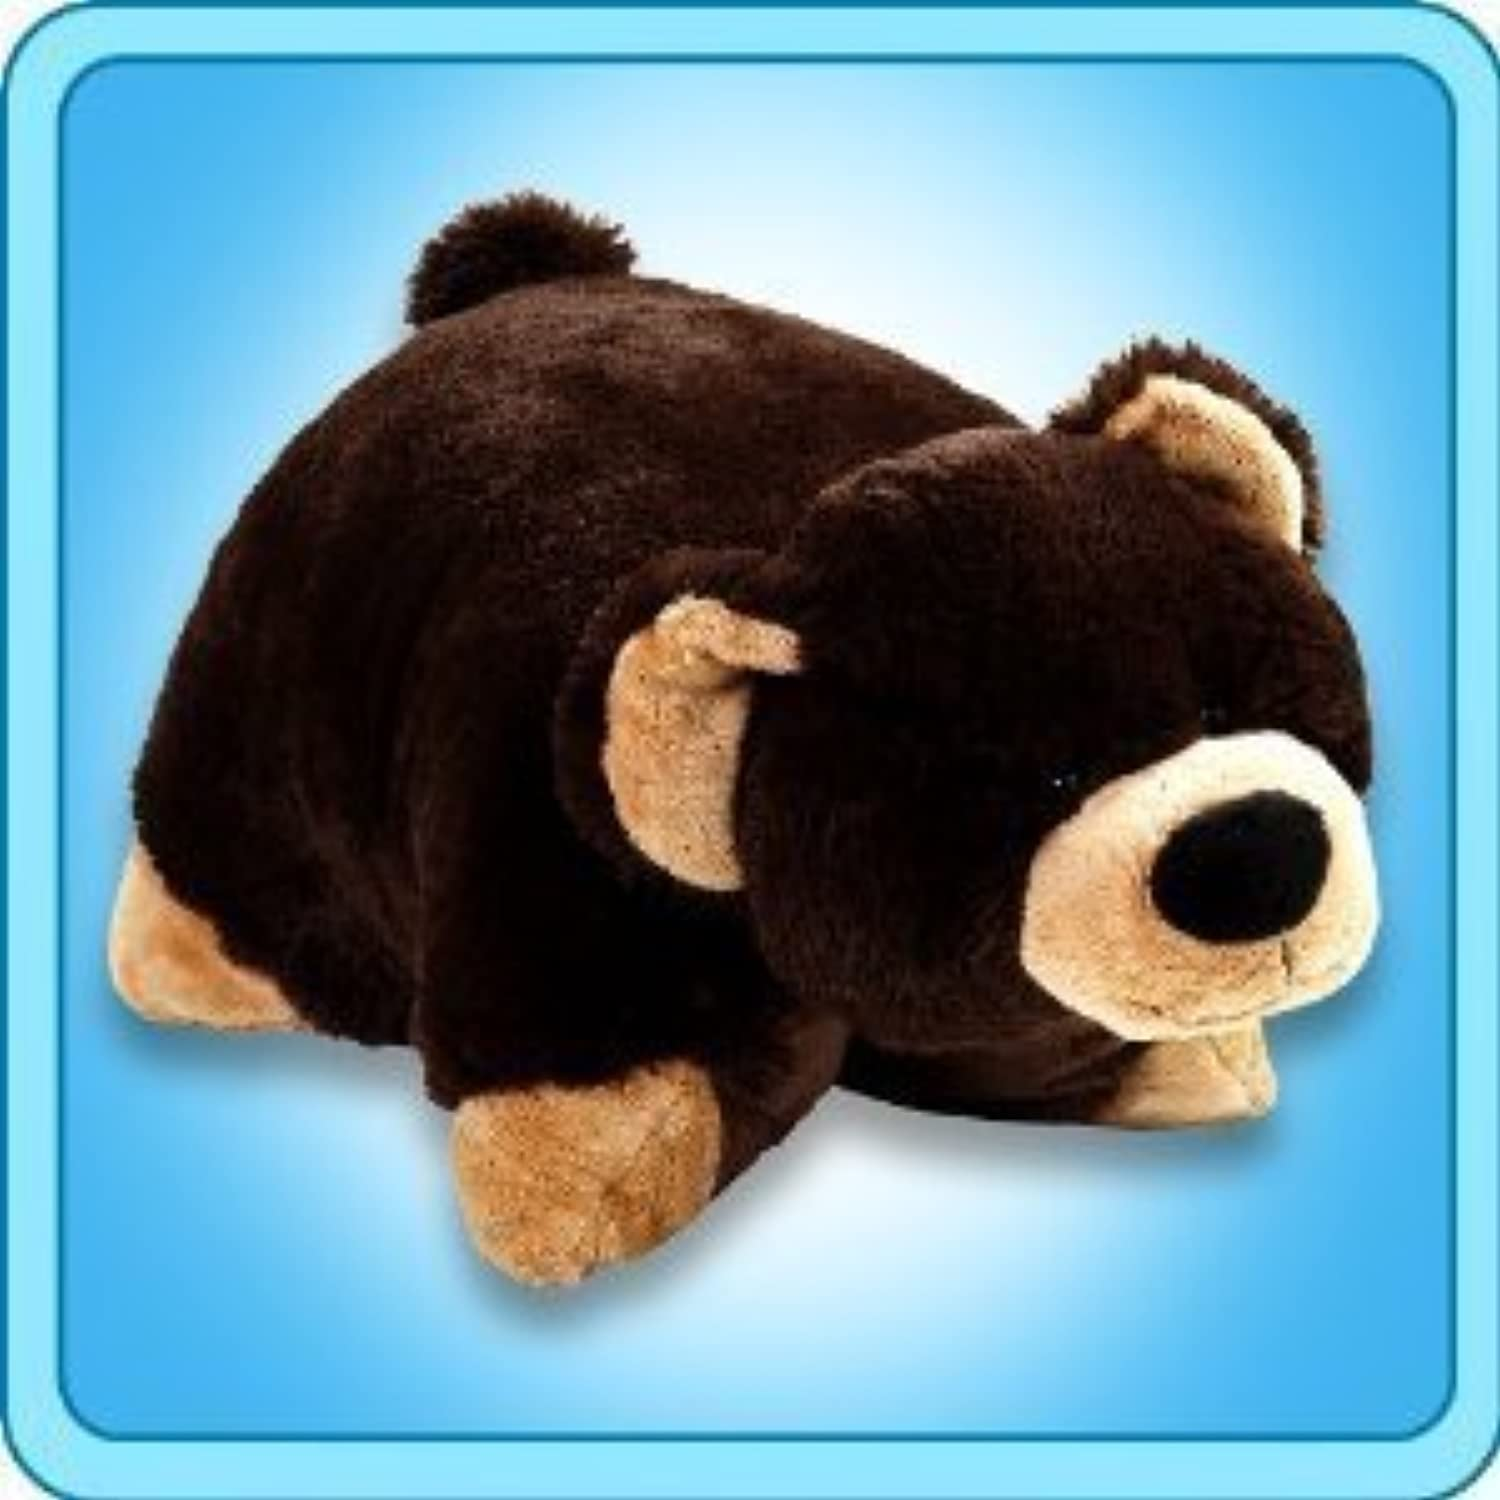 tienda Pee Wee Genuine Pillow Pillow Pillow Pet Mr. BEAR Small 11  by CJ Products  más orden